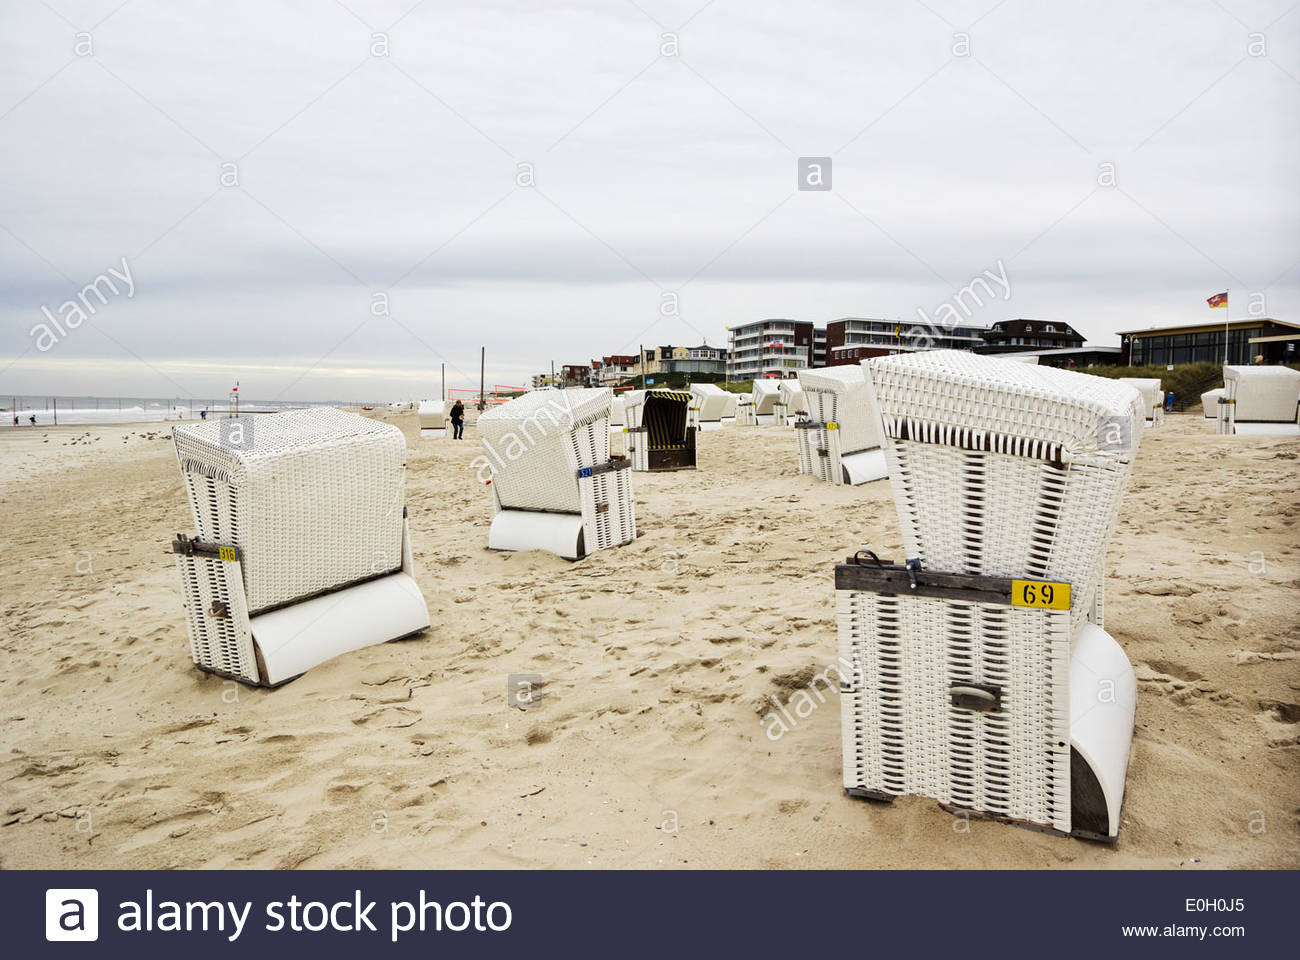 Strandkörbe on the beach at Wangerooge, sea-facing hotels in the distance. - Stock Image